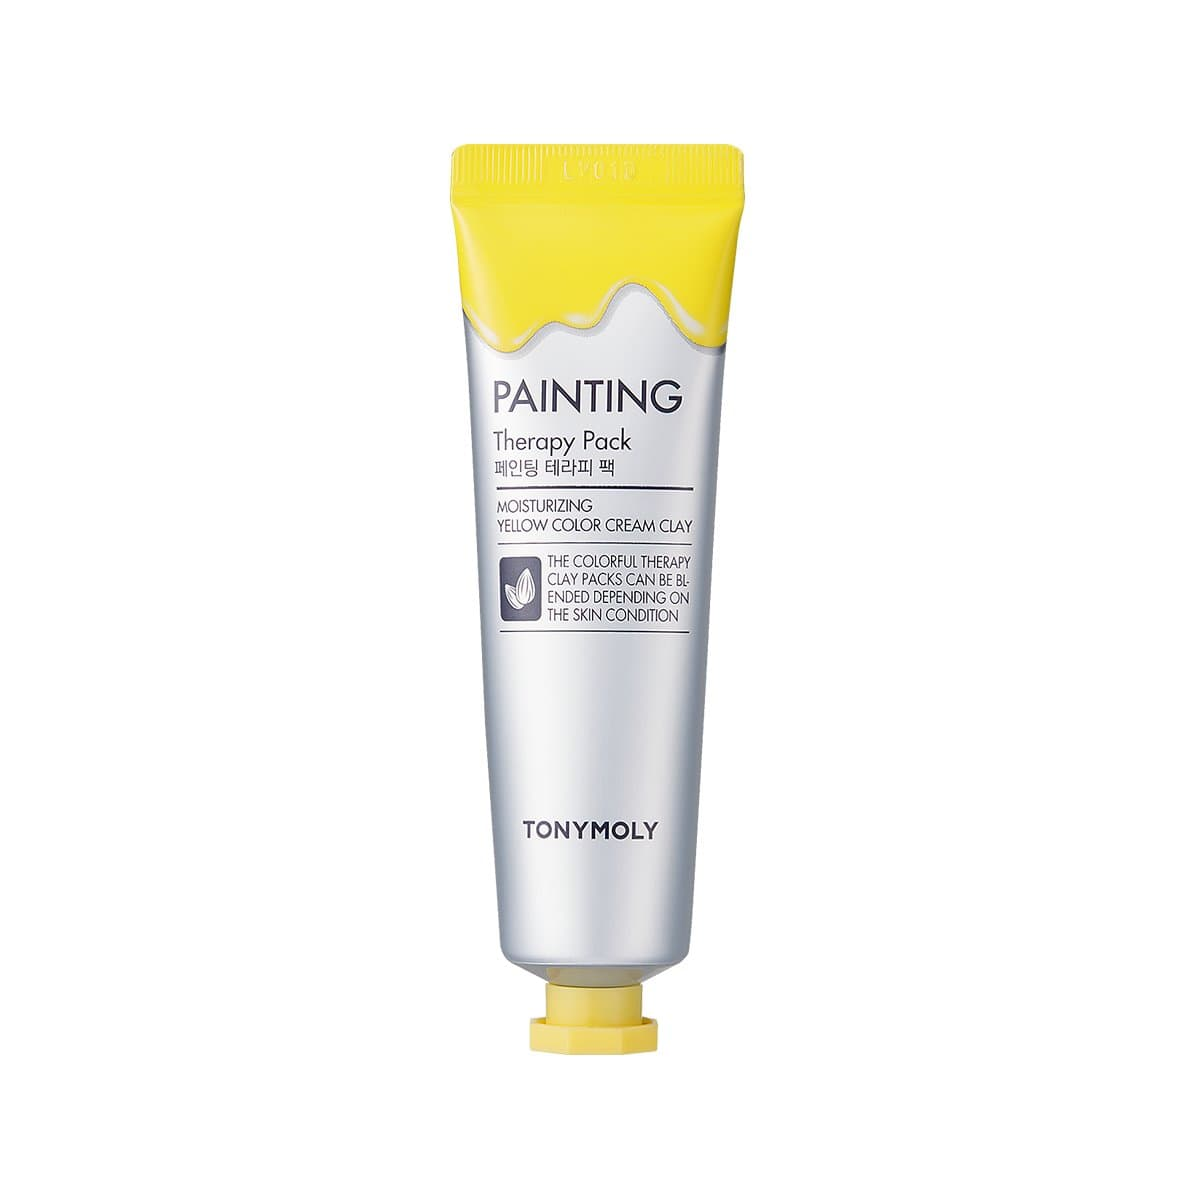 Маска для лица Tony Moly Painting Therapy Pack Moisturizing, 30 мл.